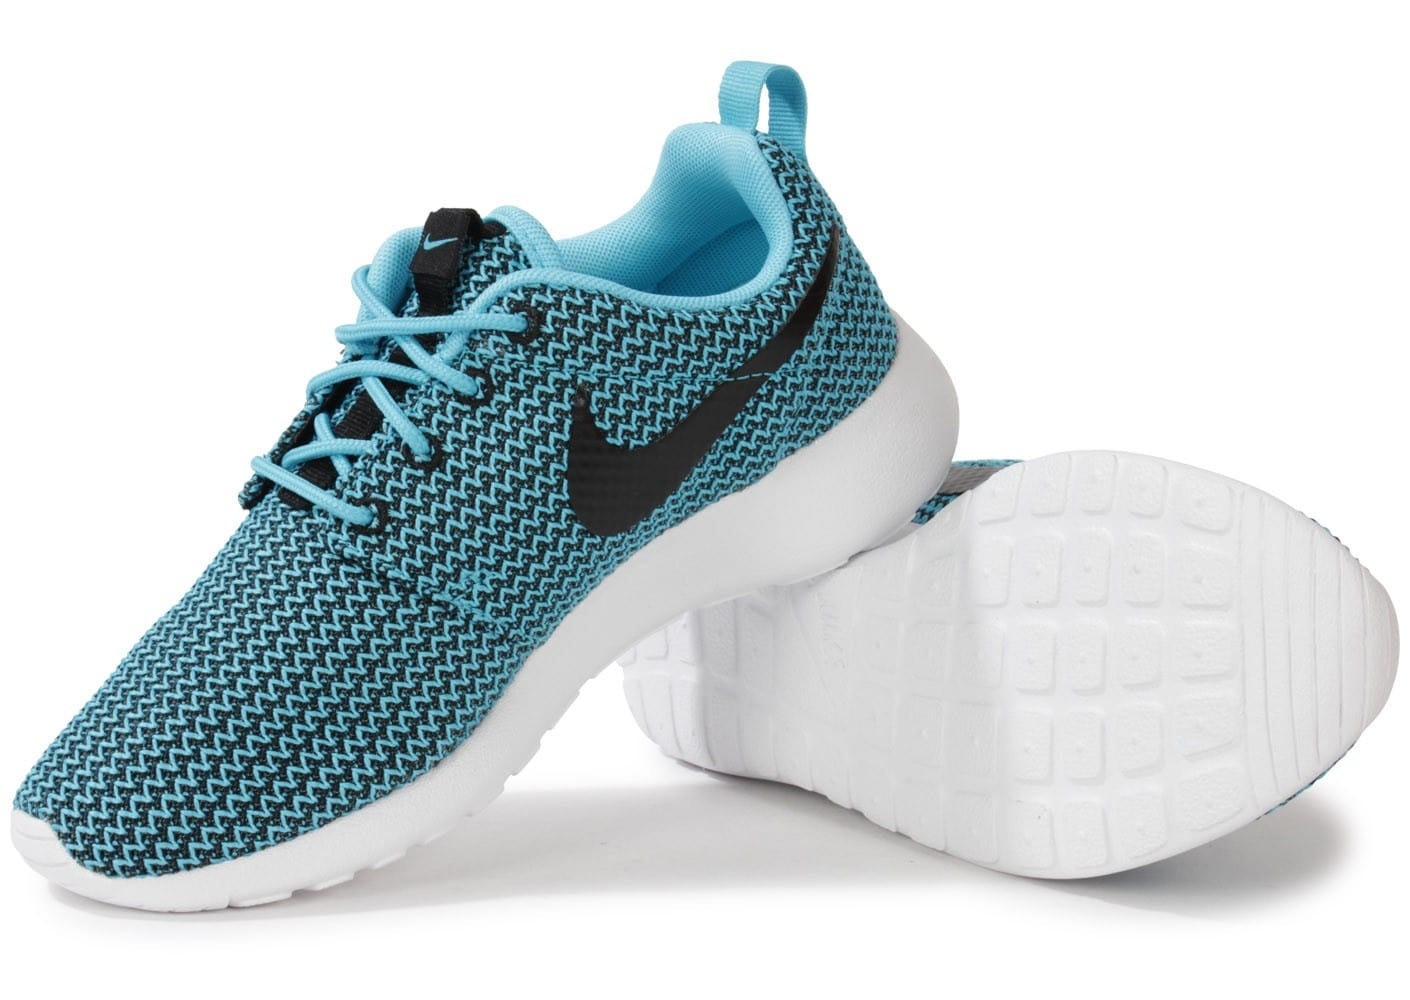 new styles 19461 4fe83 Cliquez pour zoomer Chaussures Nike Roshe Run Clear Water vue extérieure  Chaussures Nike Roshe Run Clear Water vue intérieure ...